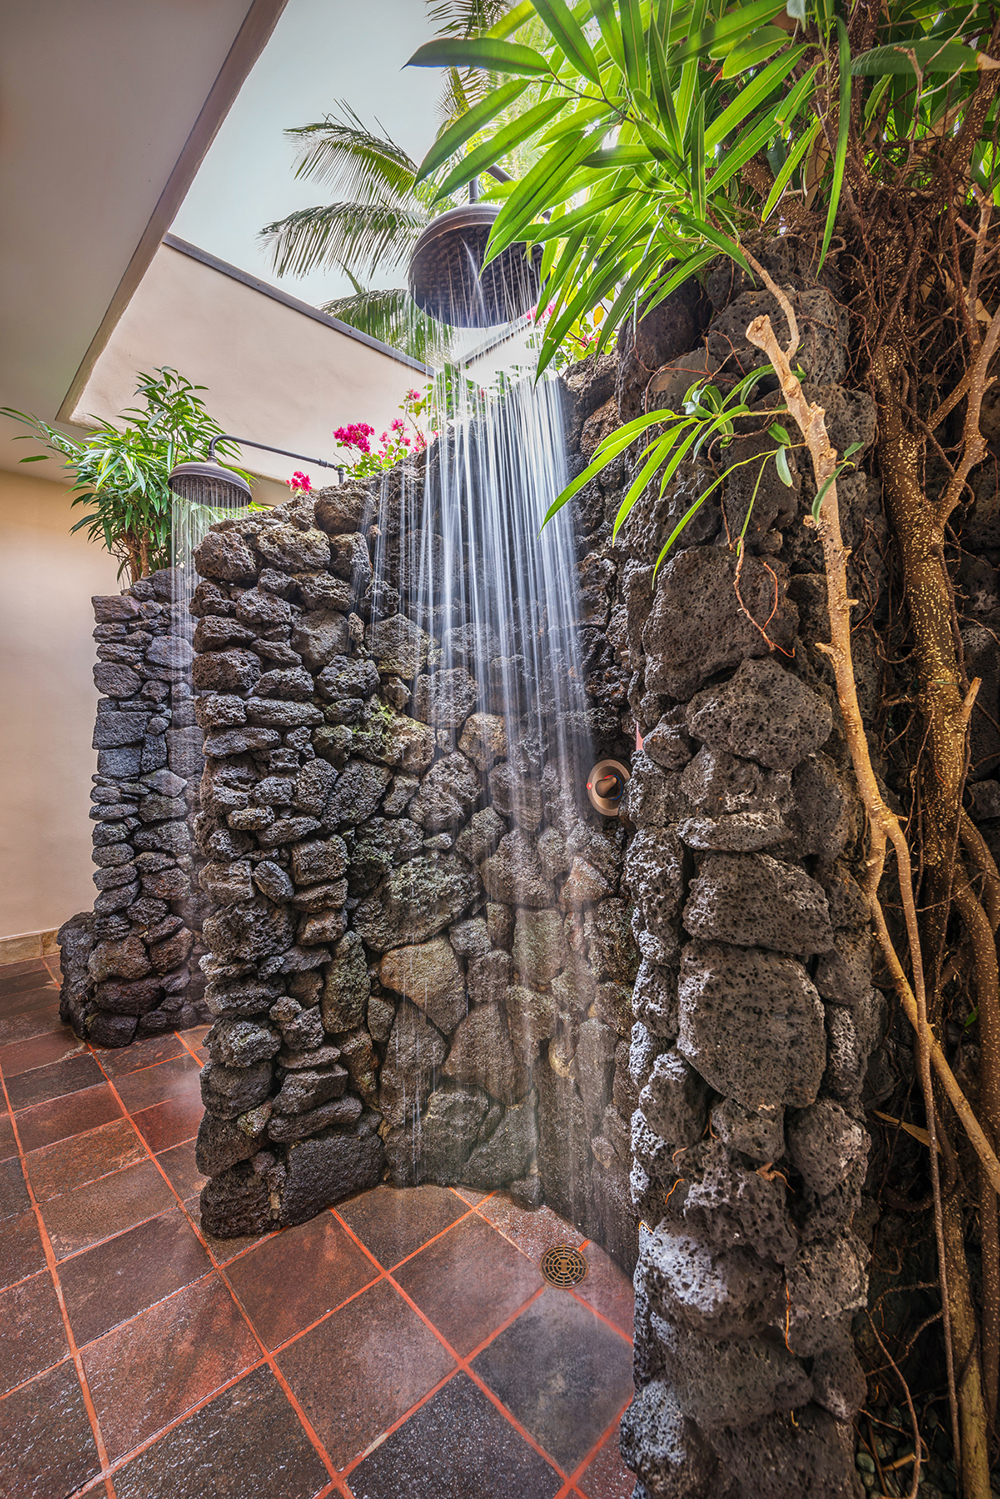 Waterfall rock shower at the Anara Spa at the Grand Hyatt Kauai